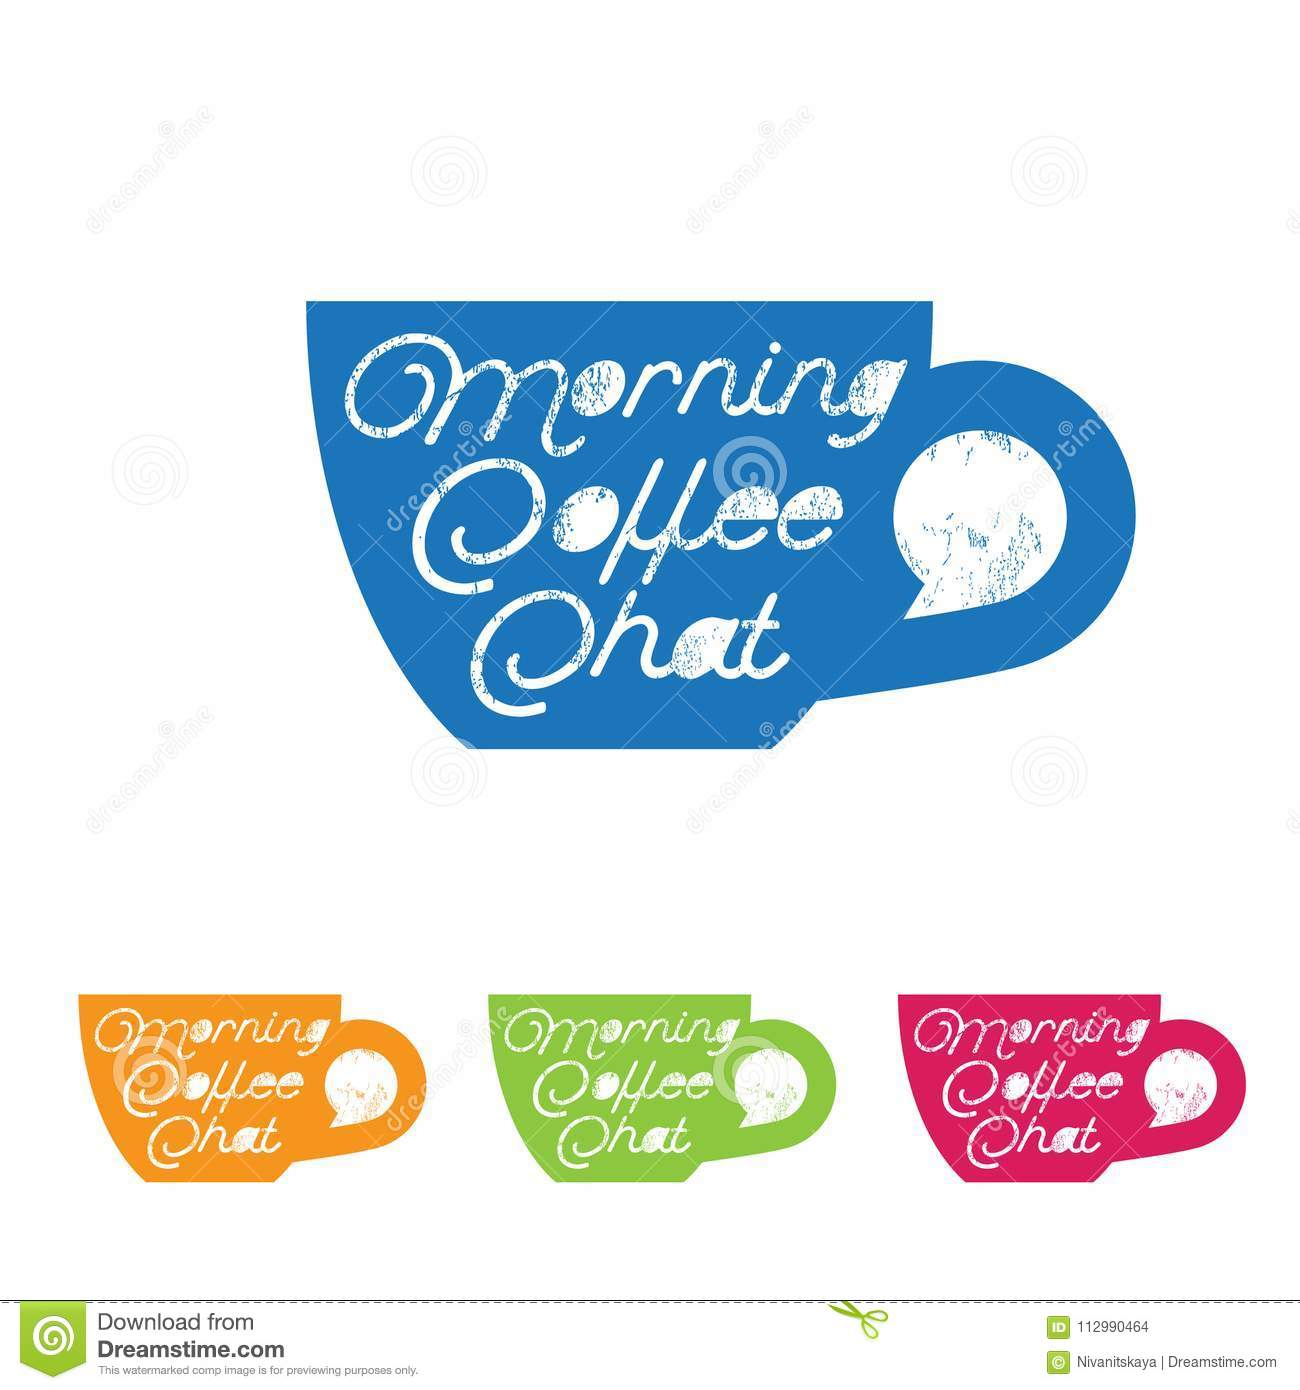 Coffee chat emblem. Morning coffee logo. Chat logo. Cup with the bubble in vintage style.